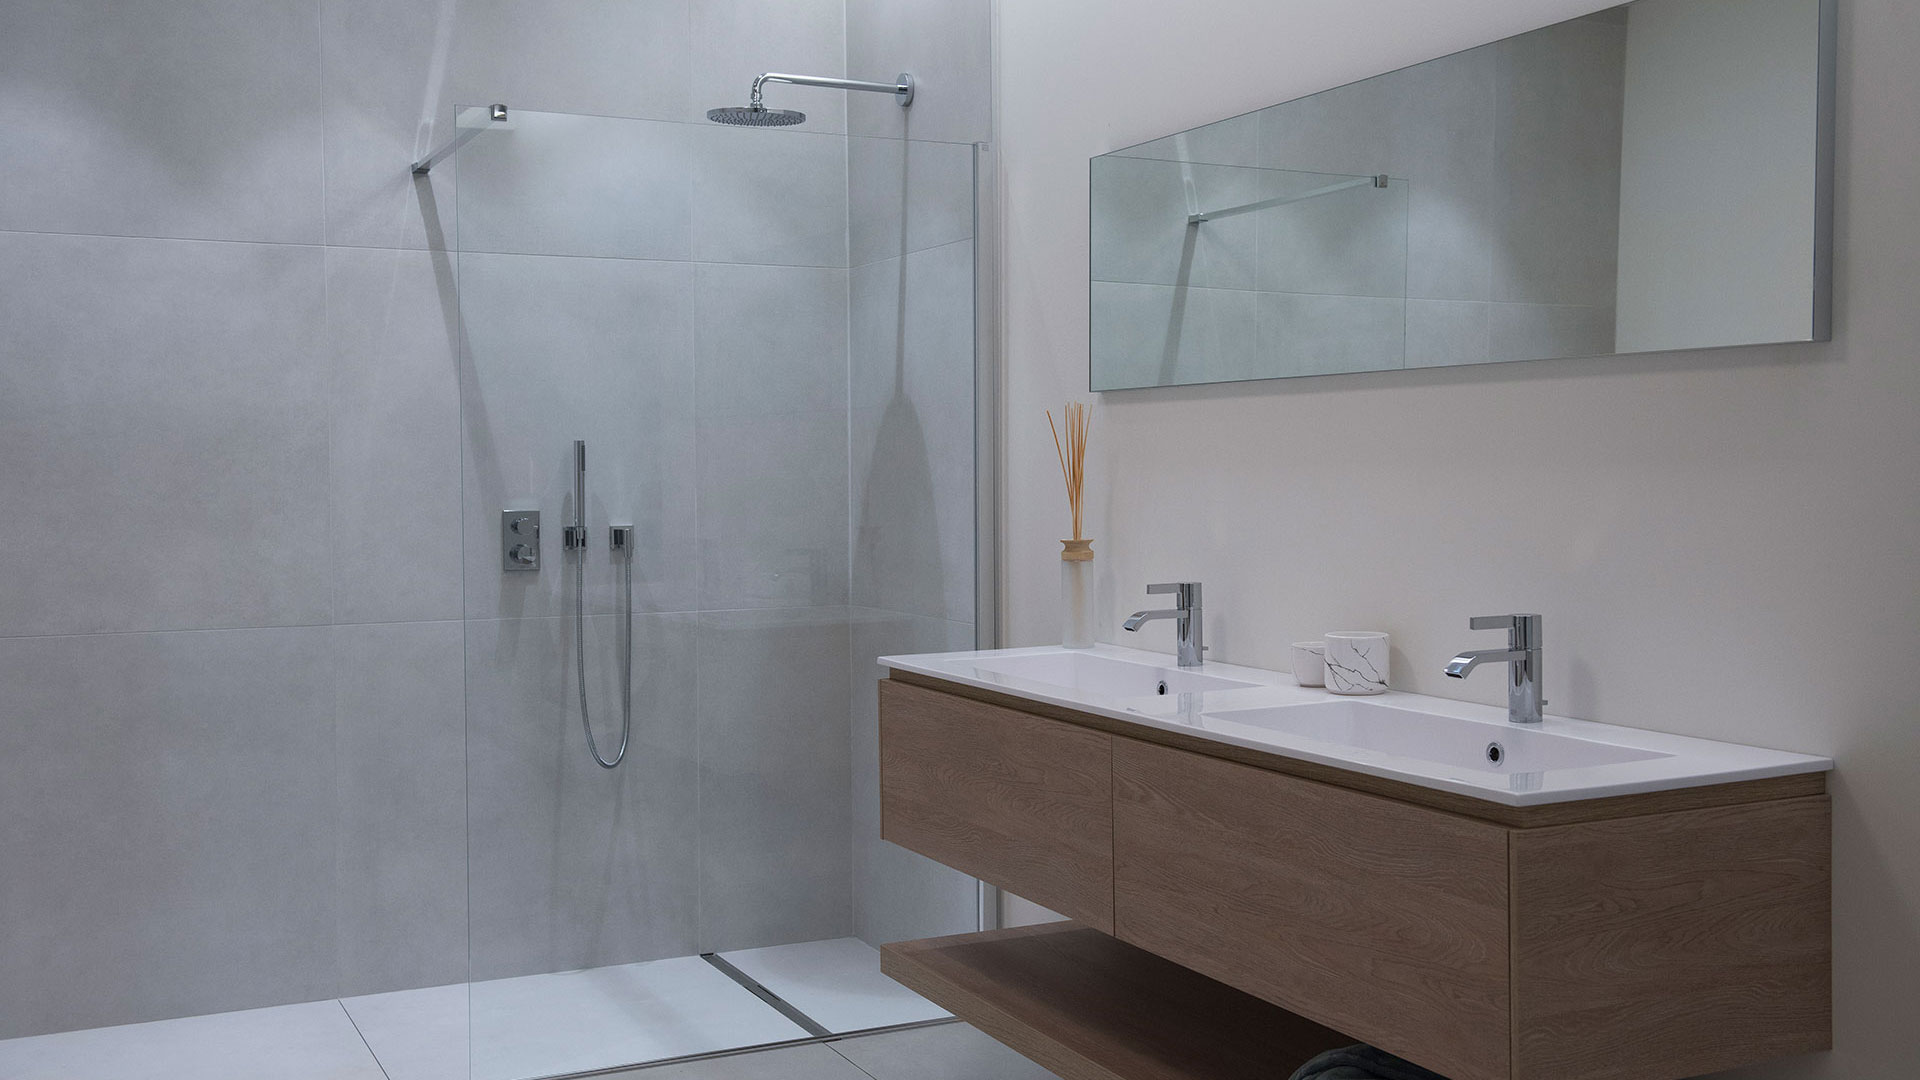 Renoconcept has the expertise to renovate every bathroom innovatively. Ask for advice!